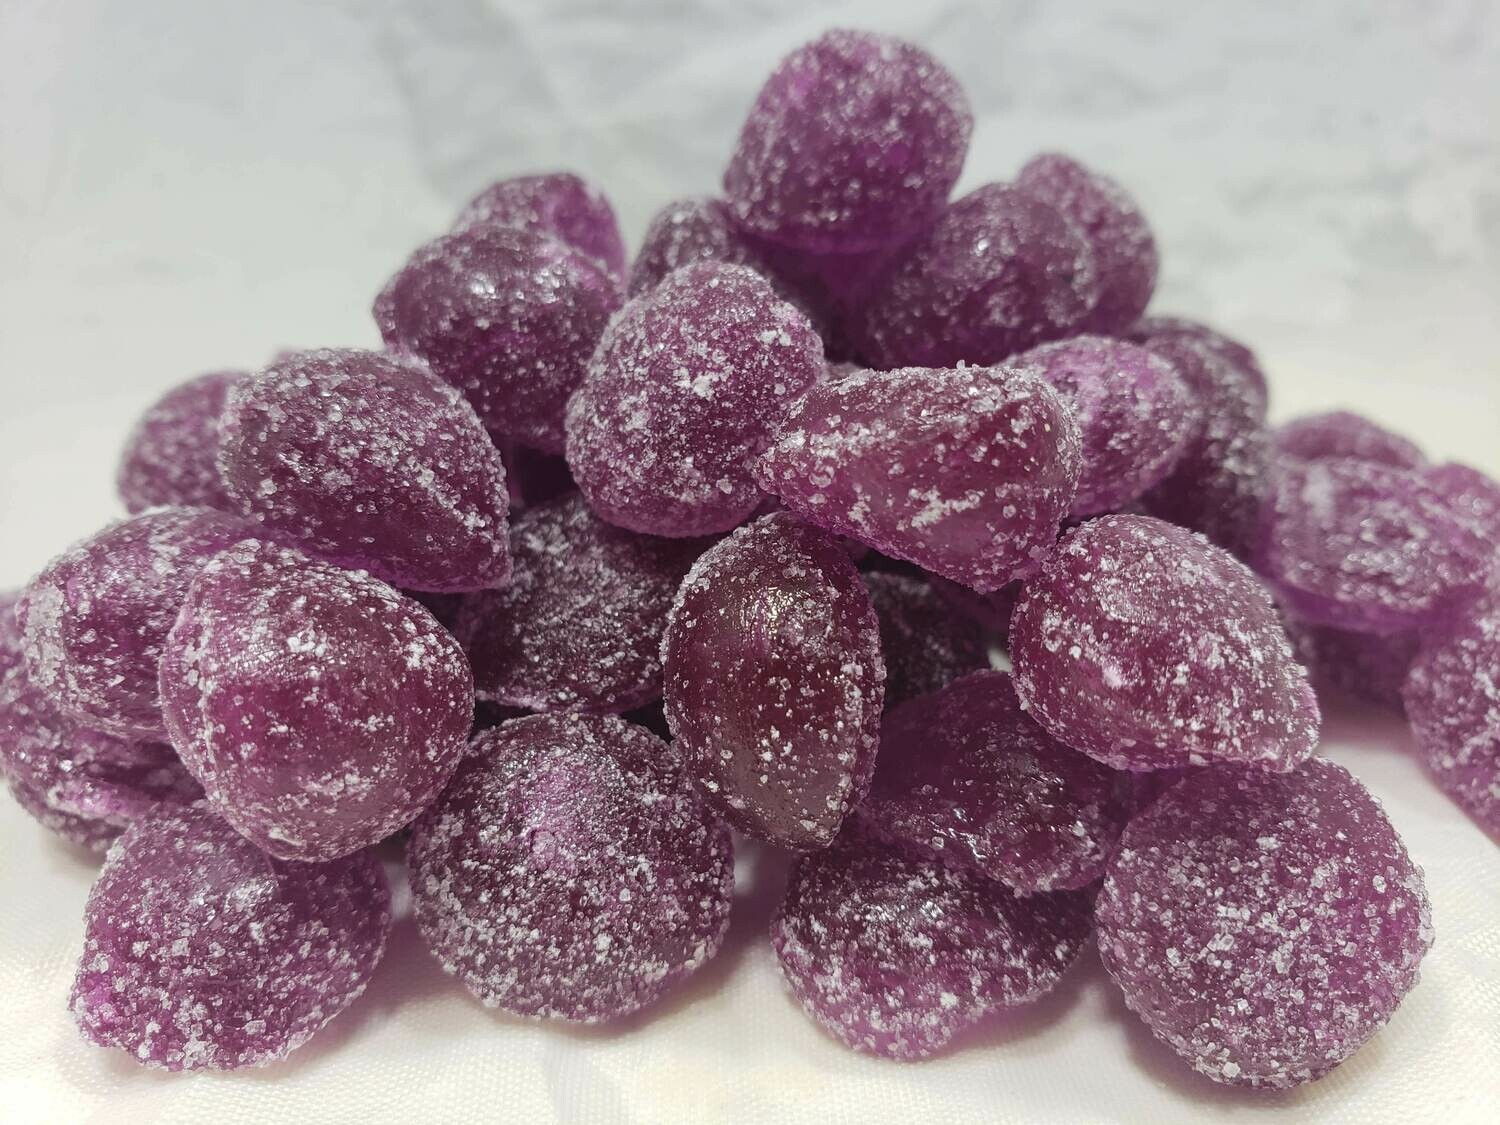 Huckleberry Old-Fashioned Hard Candy